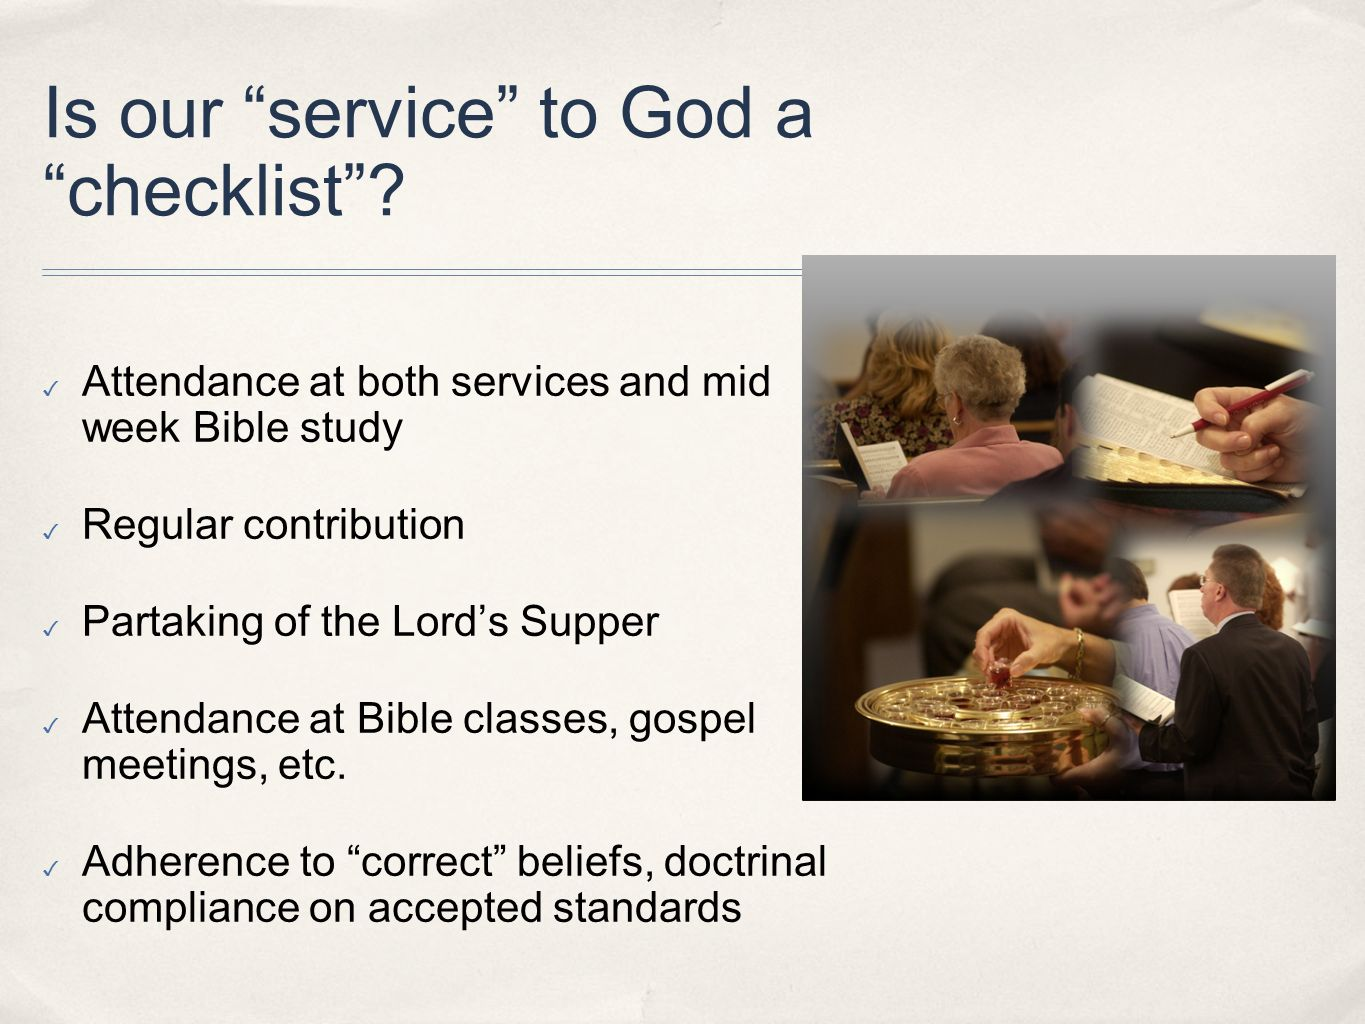 Is our service to God a checklist